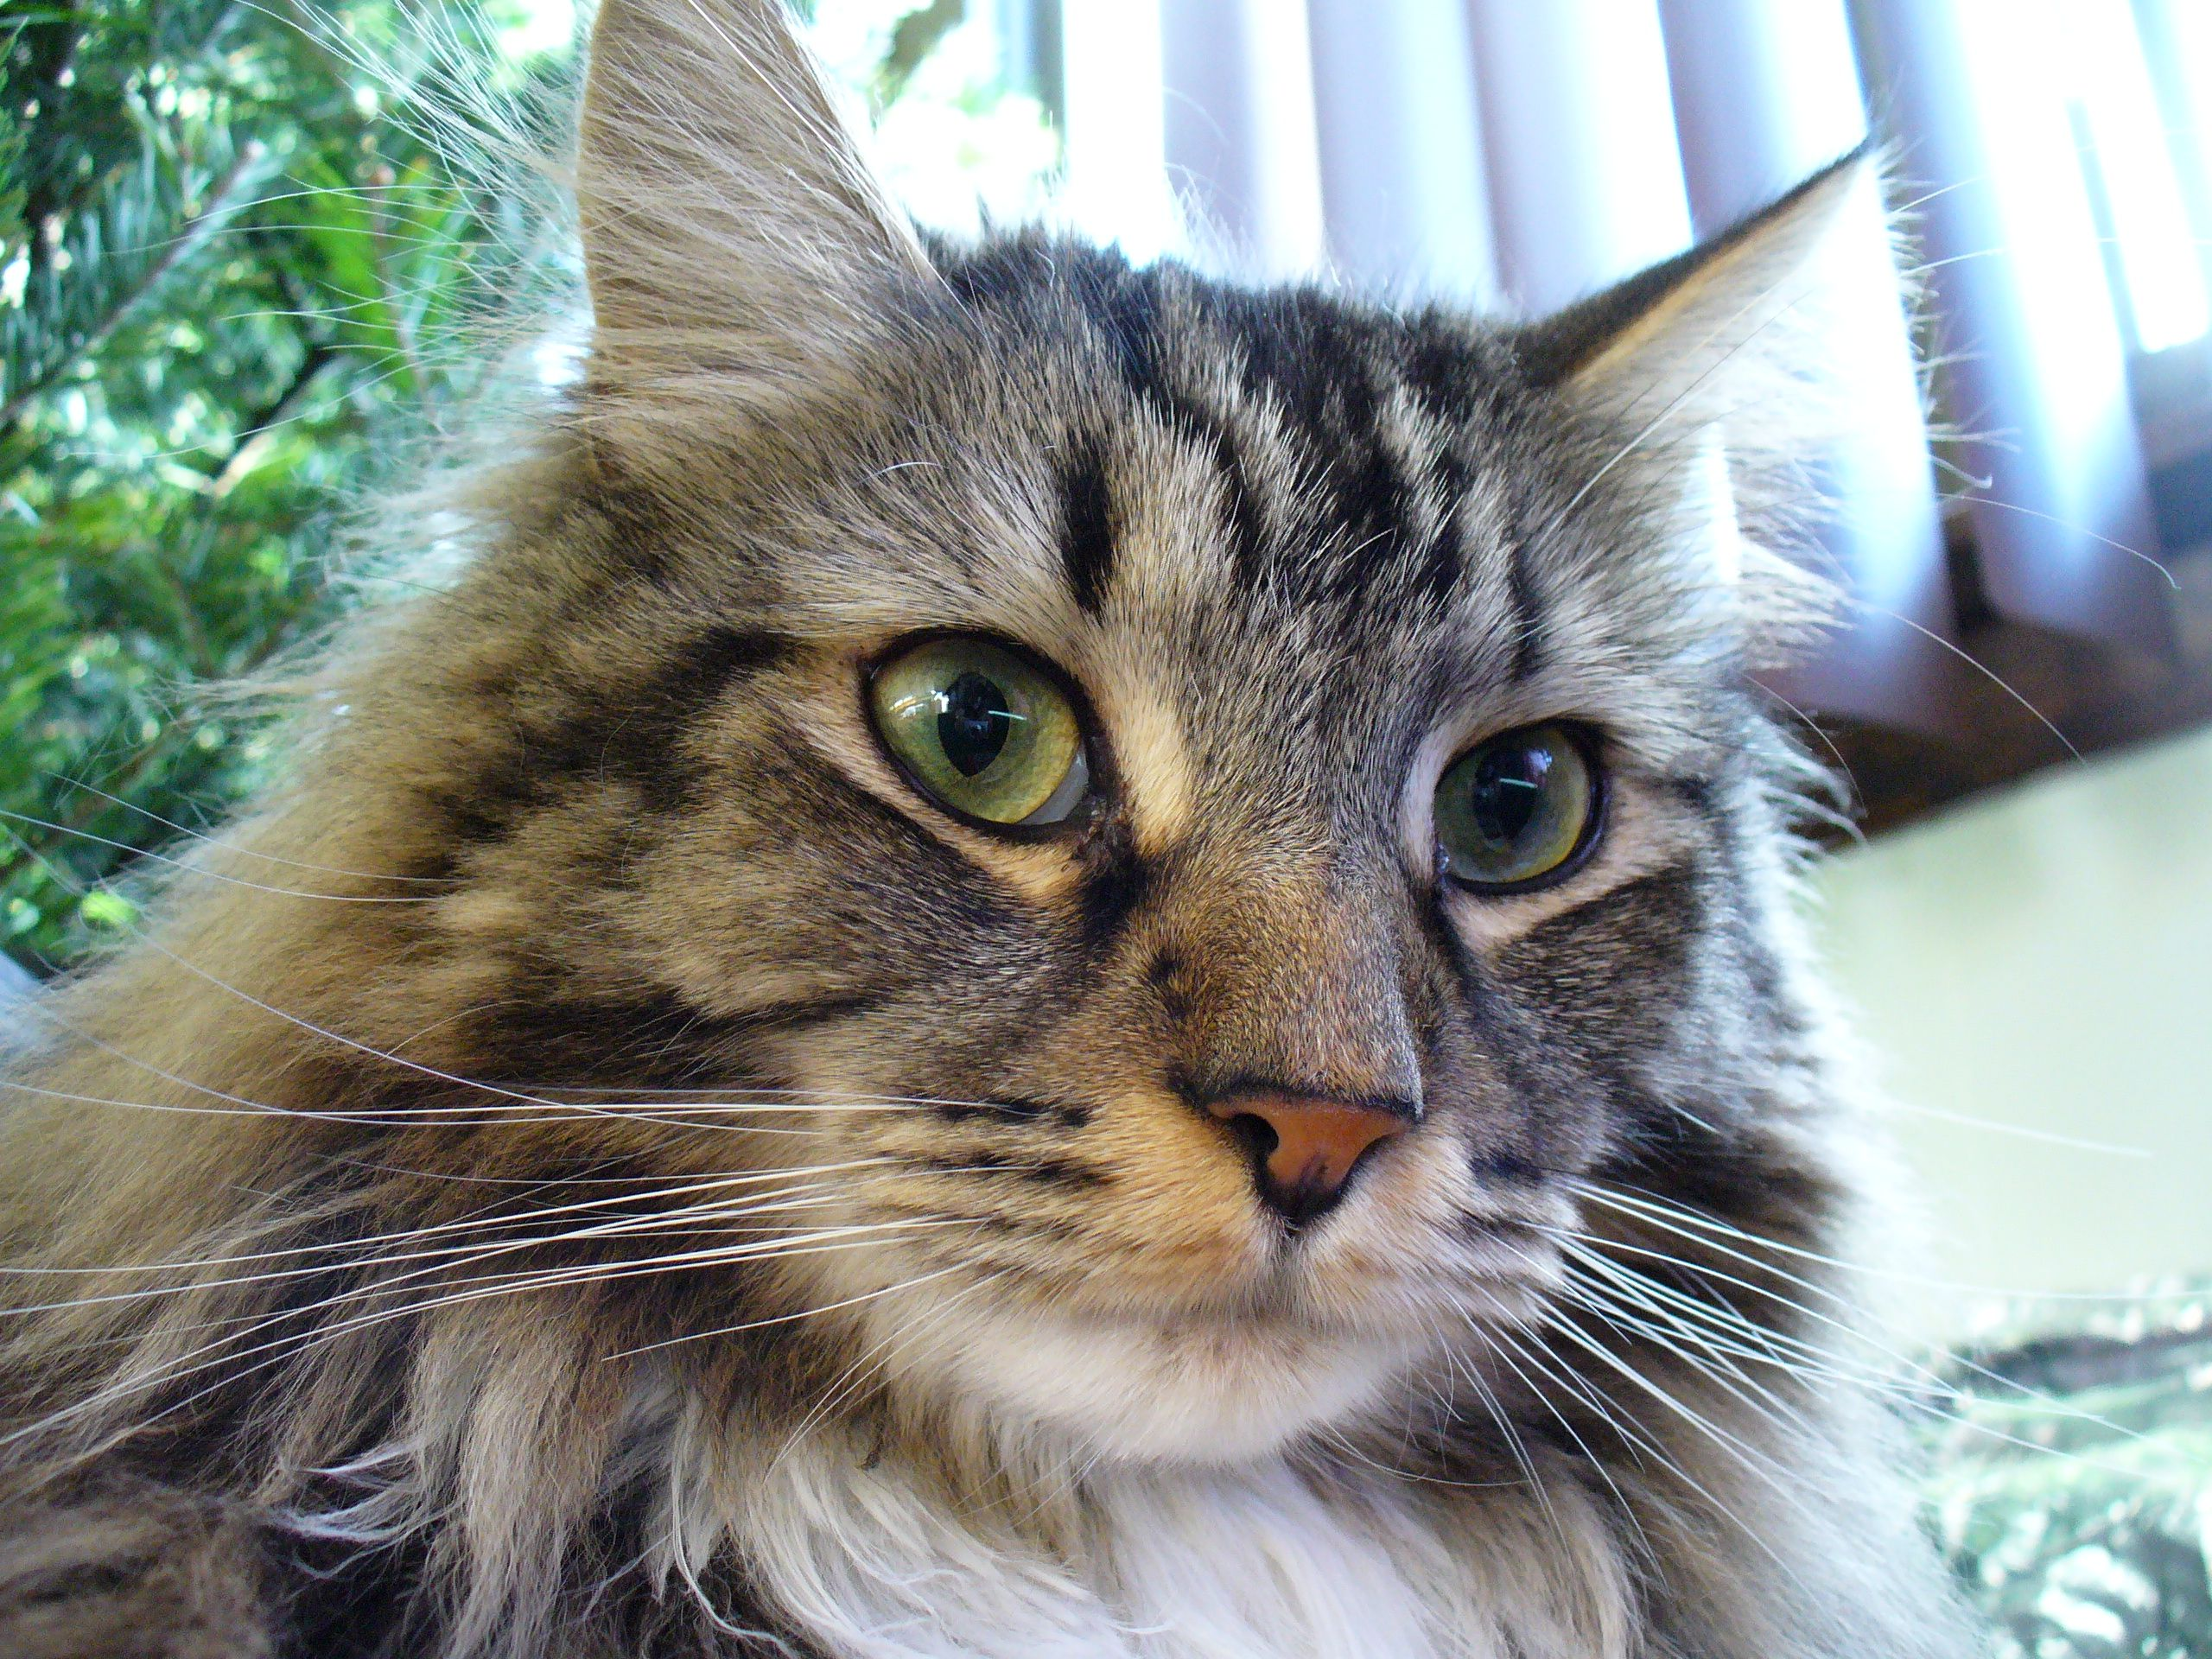 Adopting a Maine Coon from a Shelter vs Buying from a Breeder